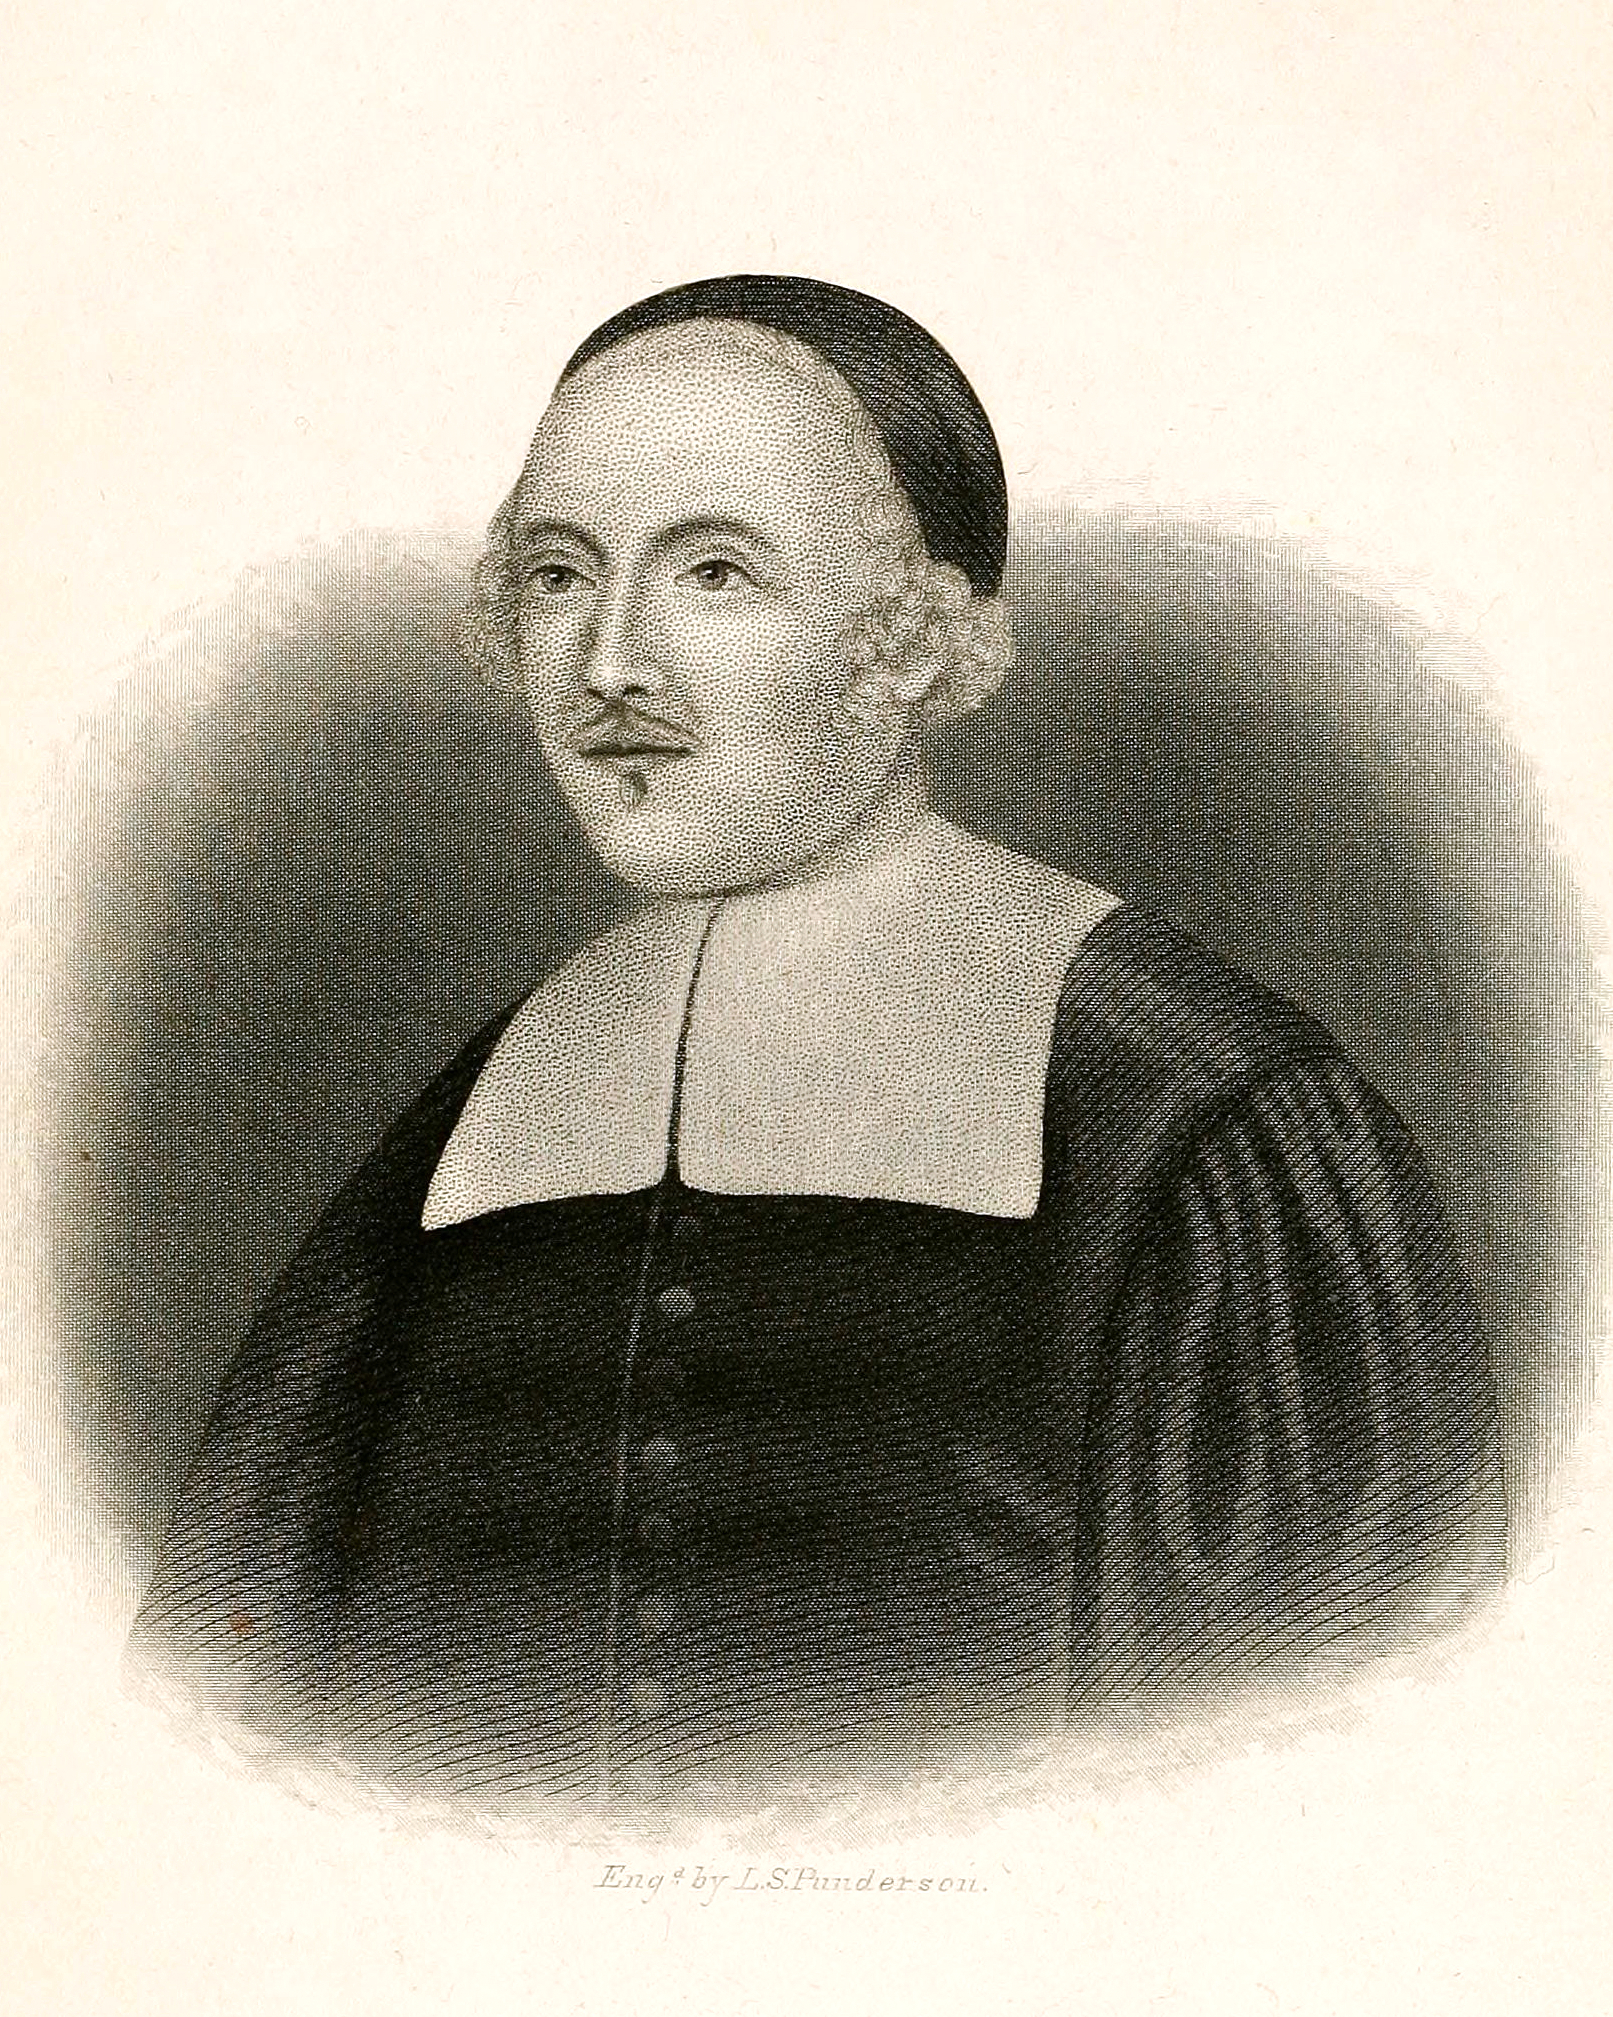 John Davenport was a Puritan clergyman and Purtian founder of New Haven.